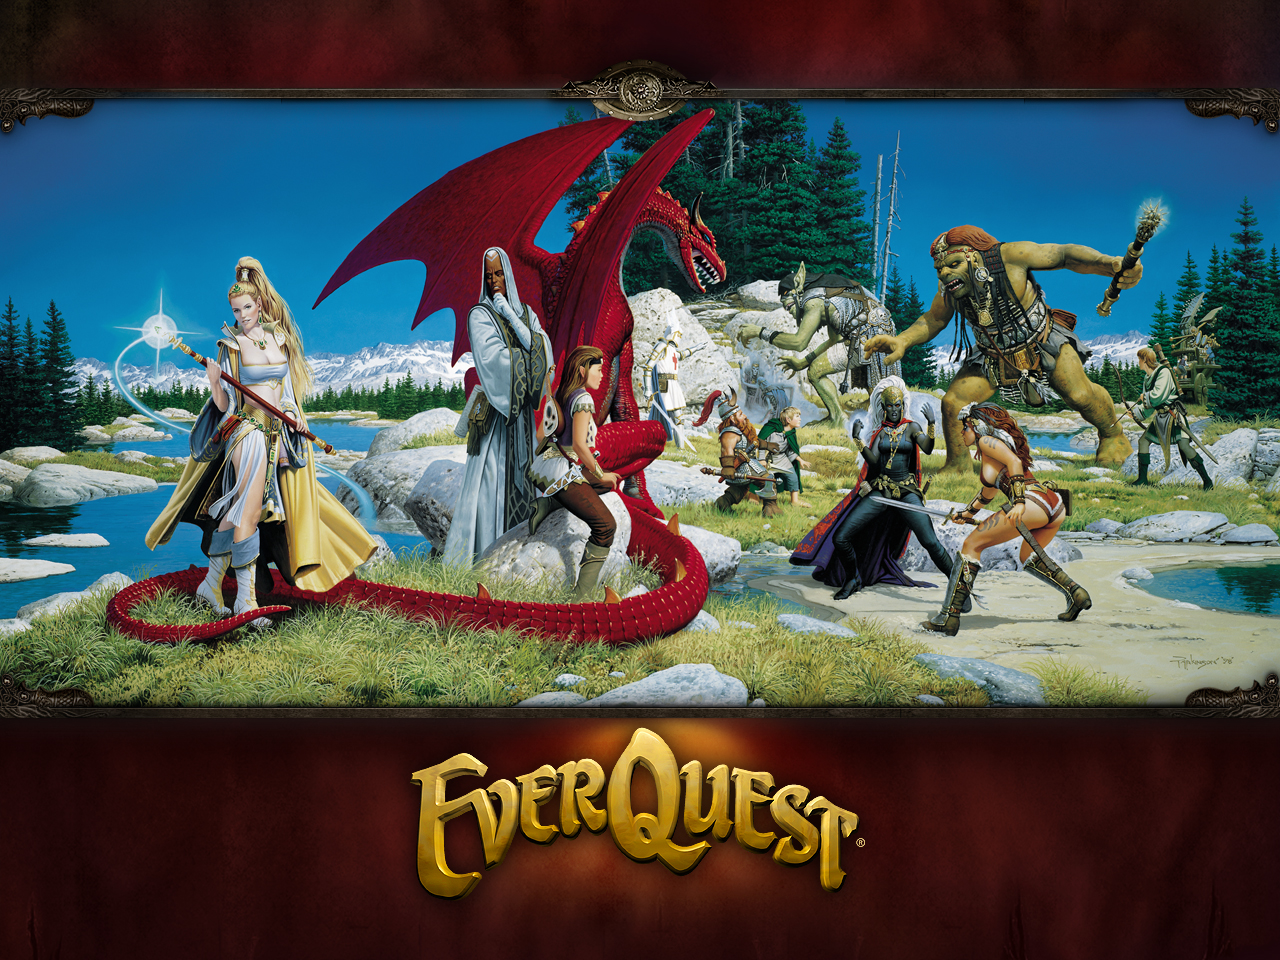 Everquest press image